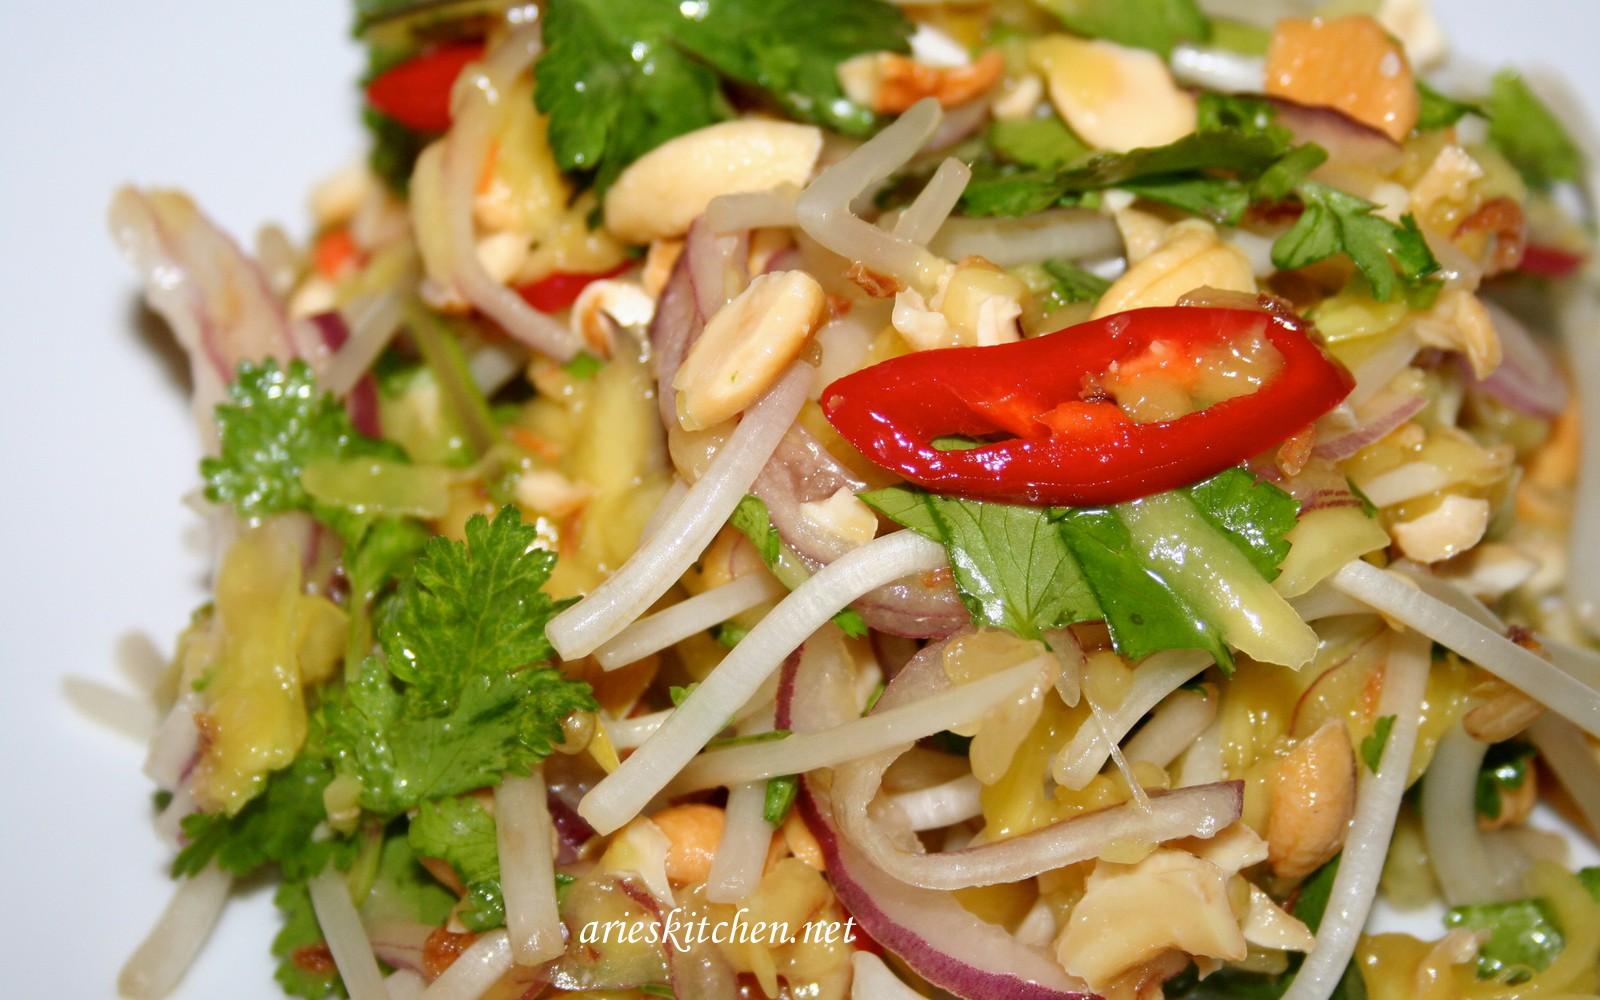 My Yummy Mango Salad Recipe